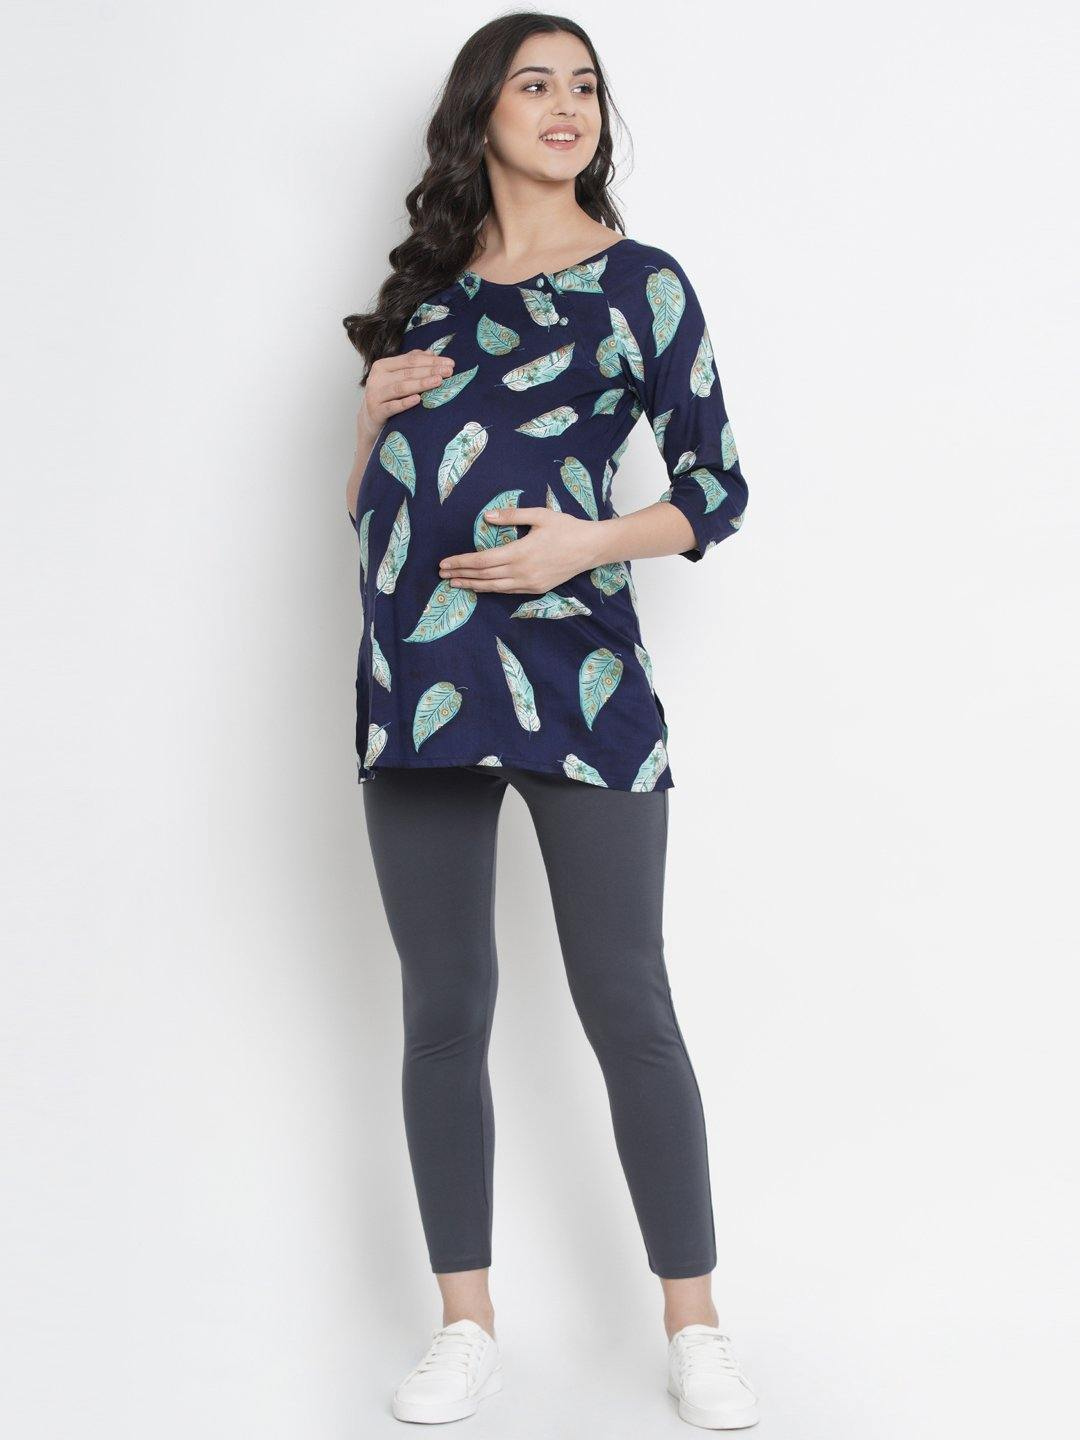 Mine4Nine - Top - Space Blue Regular Fit Maternity Top w/ Leaf Print, Made of Rayon